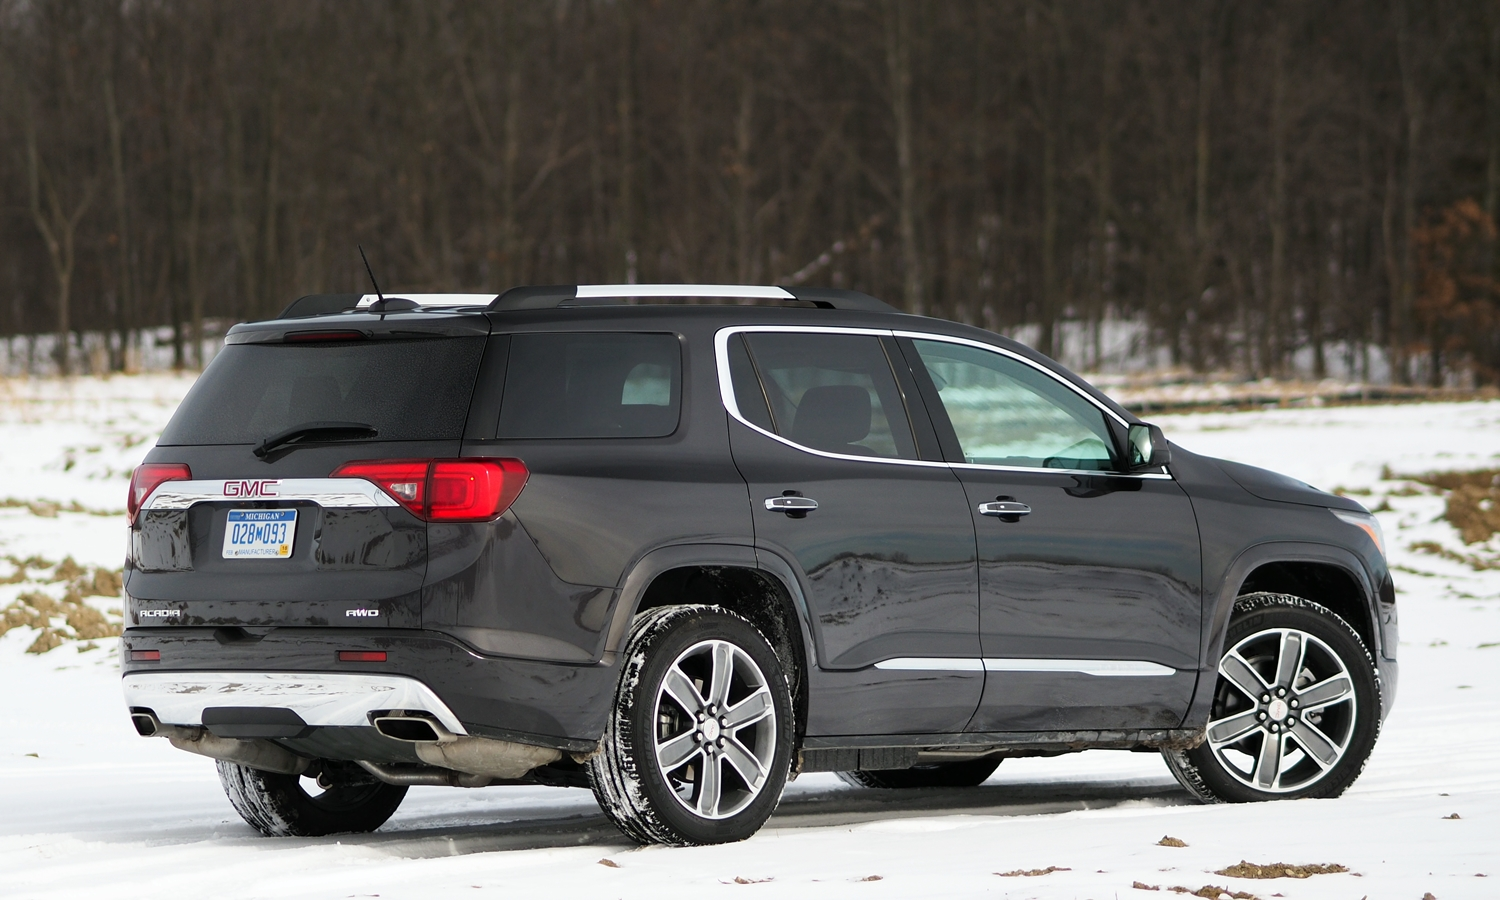 GMC Acadia Photos: 2017 GMC Acadia rear quarter view